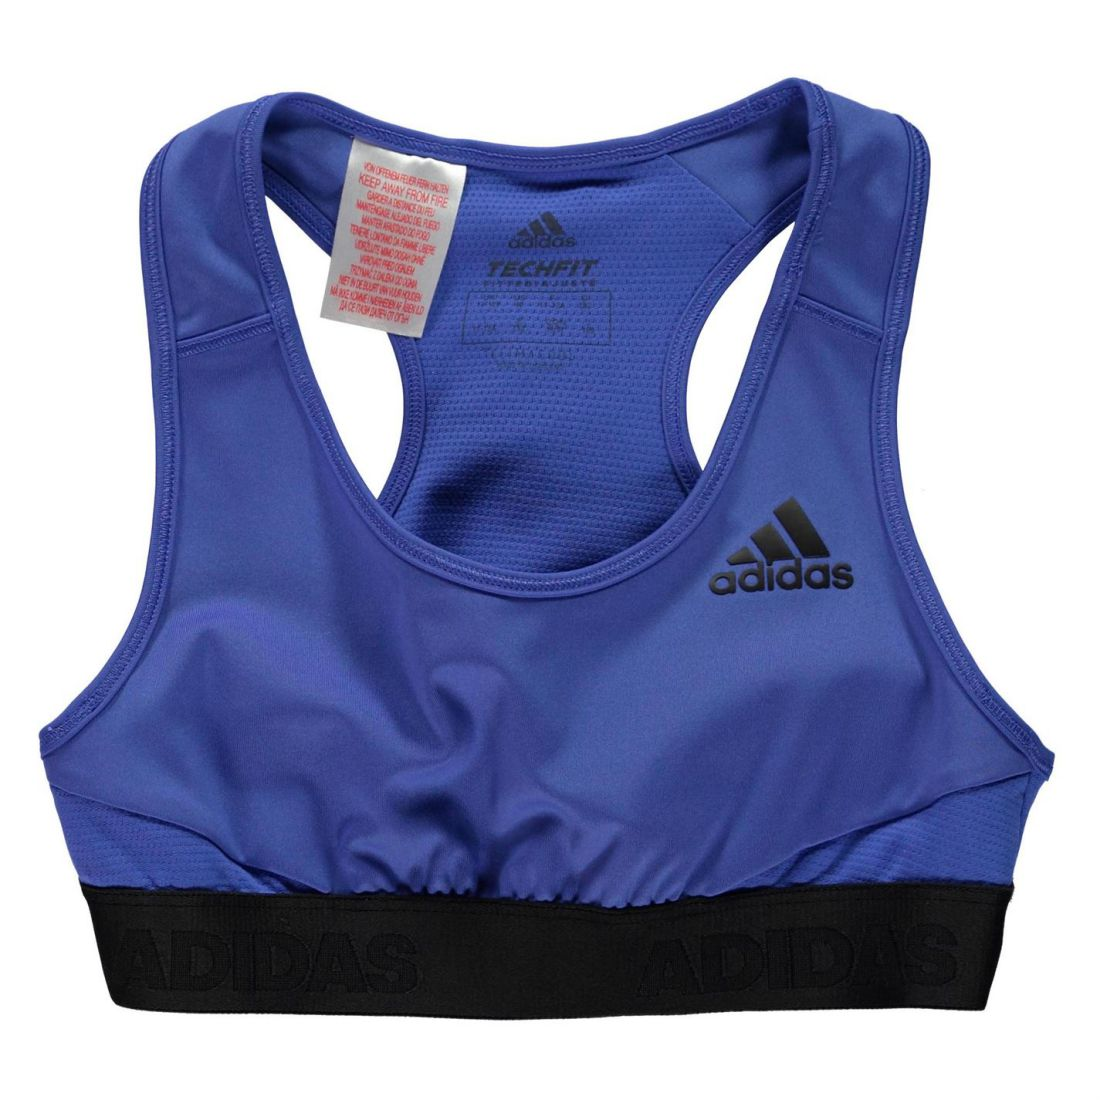 603ed45ee2a50 1 sur 2 adidas ASK Athletic Bra Youngster Girls Crew Neck Lightweight Racer  Back Mesh